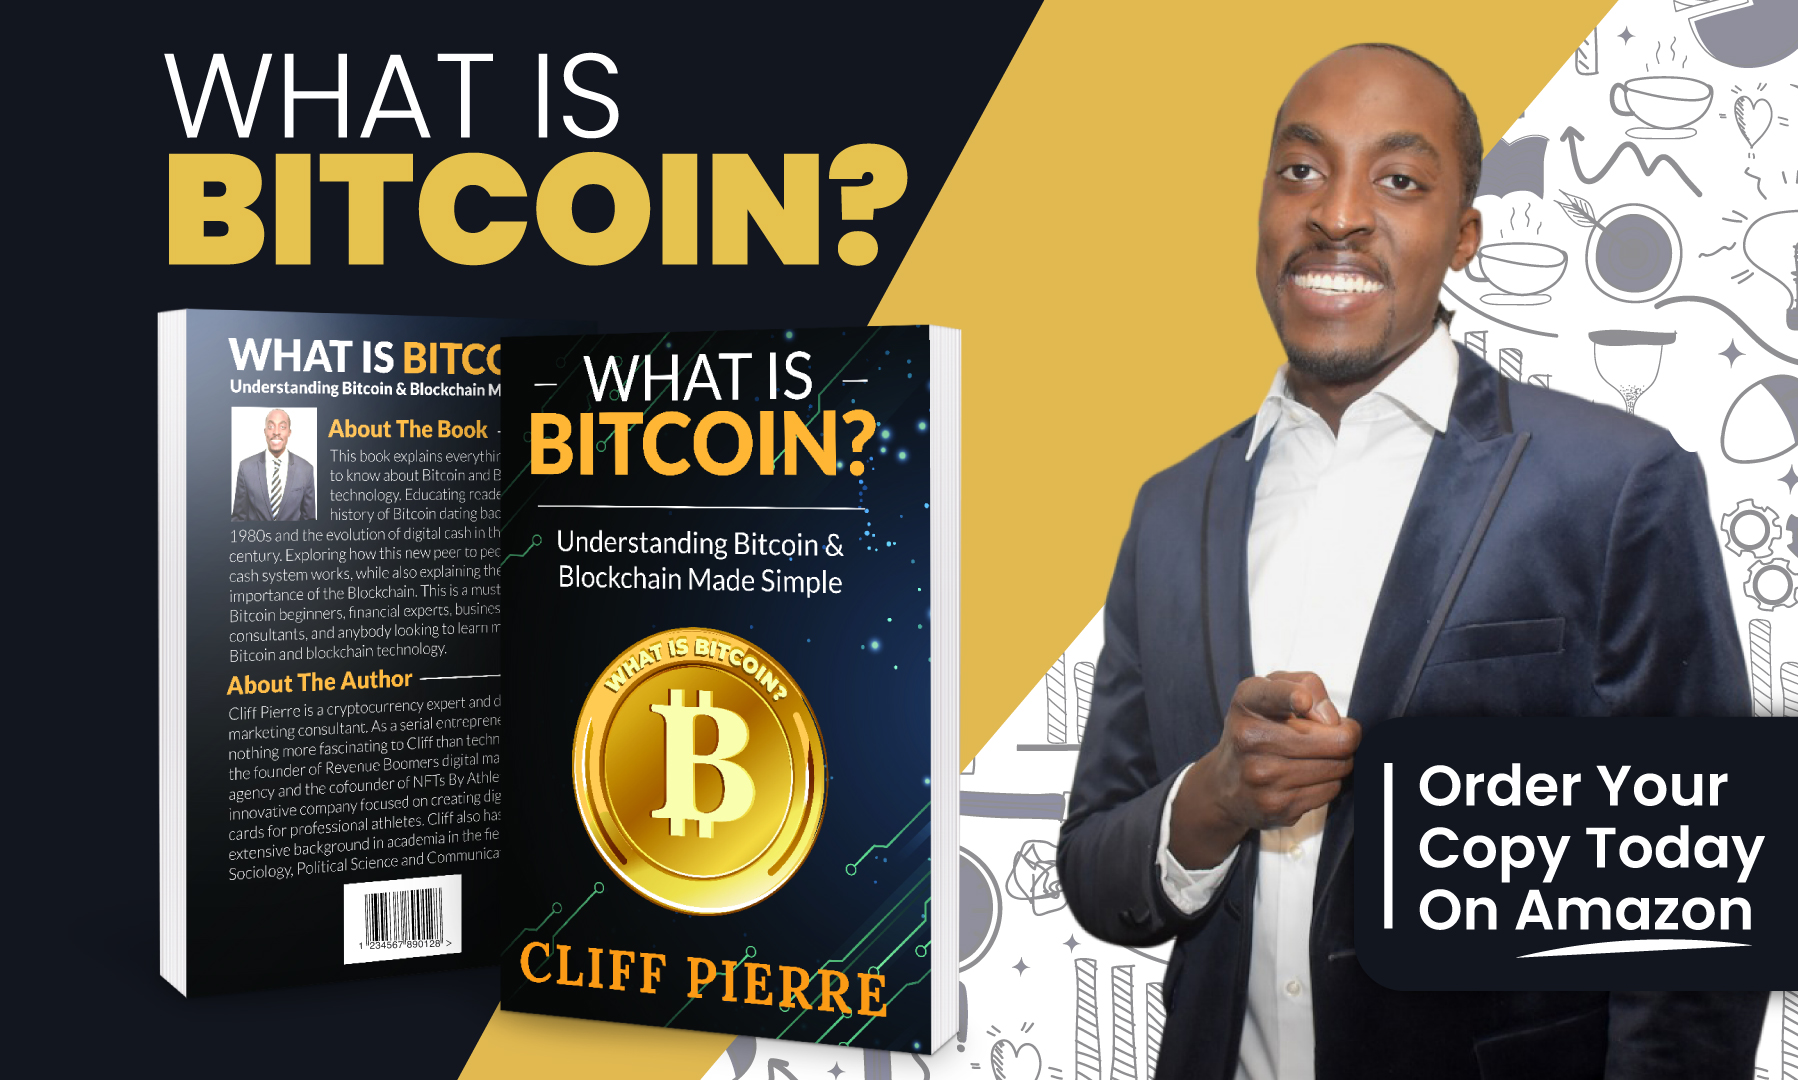 https://storage.googleapis.com/accesswire/media/655447/Revenue-Boomers-Founder-Cliff-Pierre-Releases-22What-Is-Bitcoin-Book.jpeg